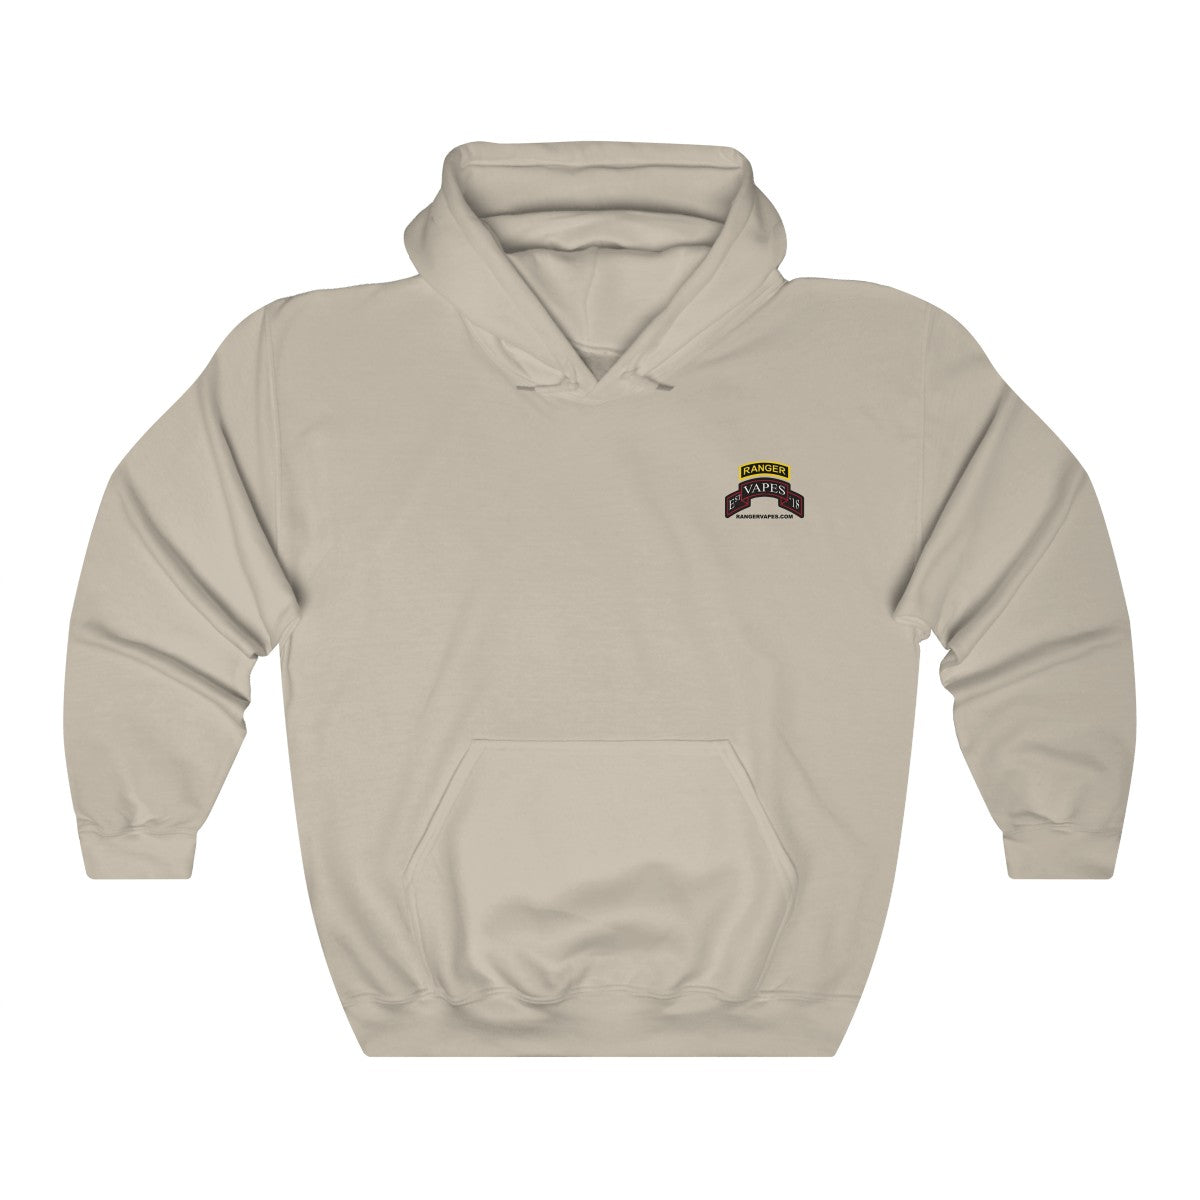 Light colored Logo Hooded Sweatshirt